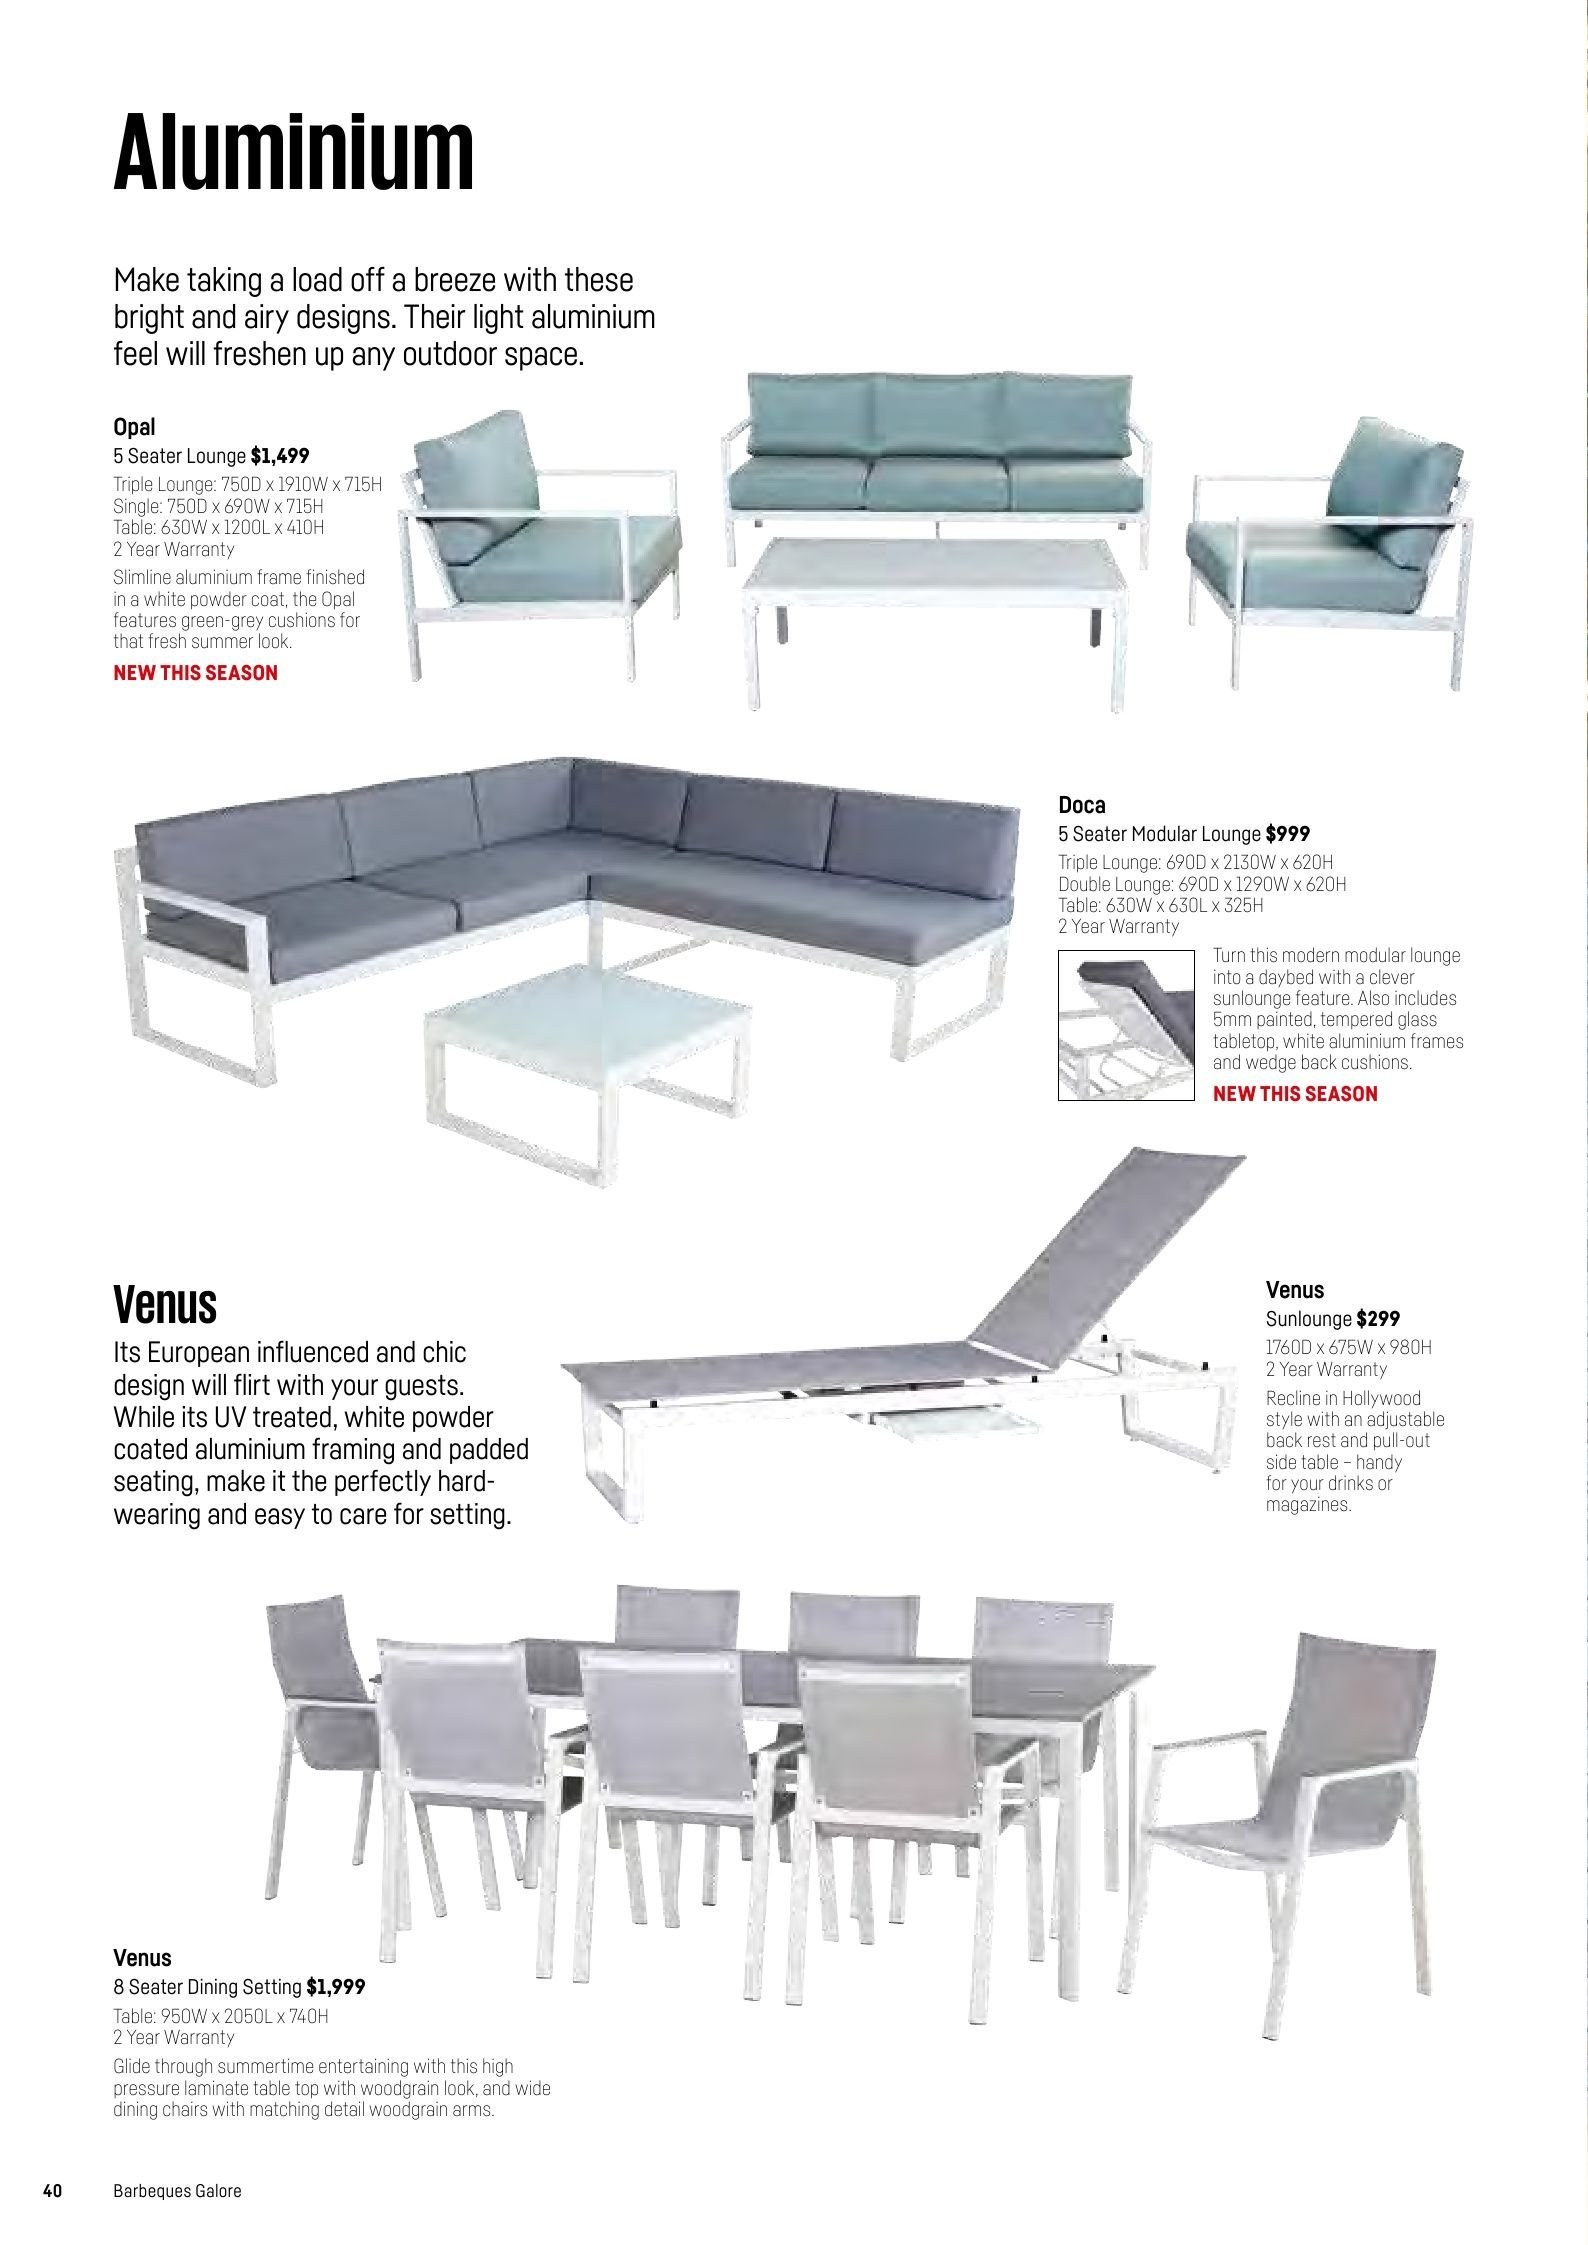 Barbeques galore catalogue sales products coat daybed table venus chair